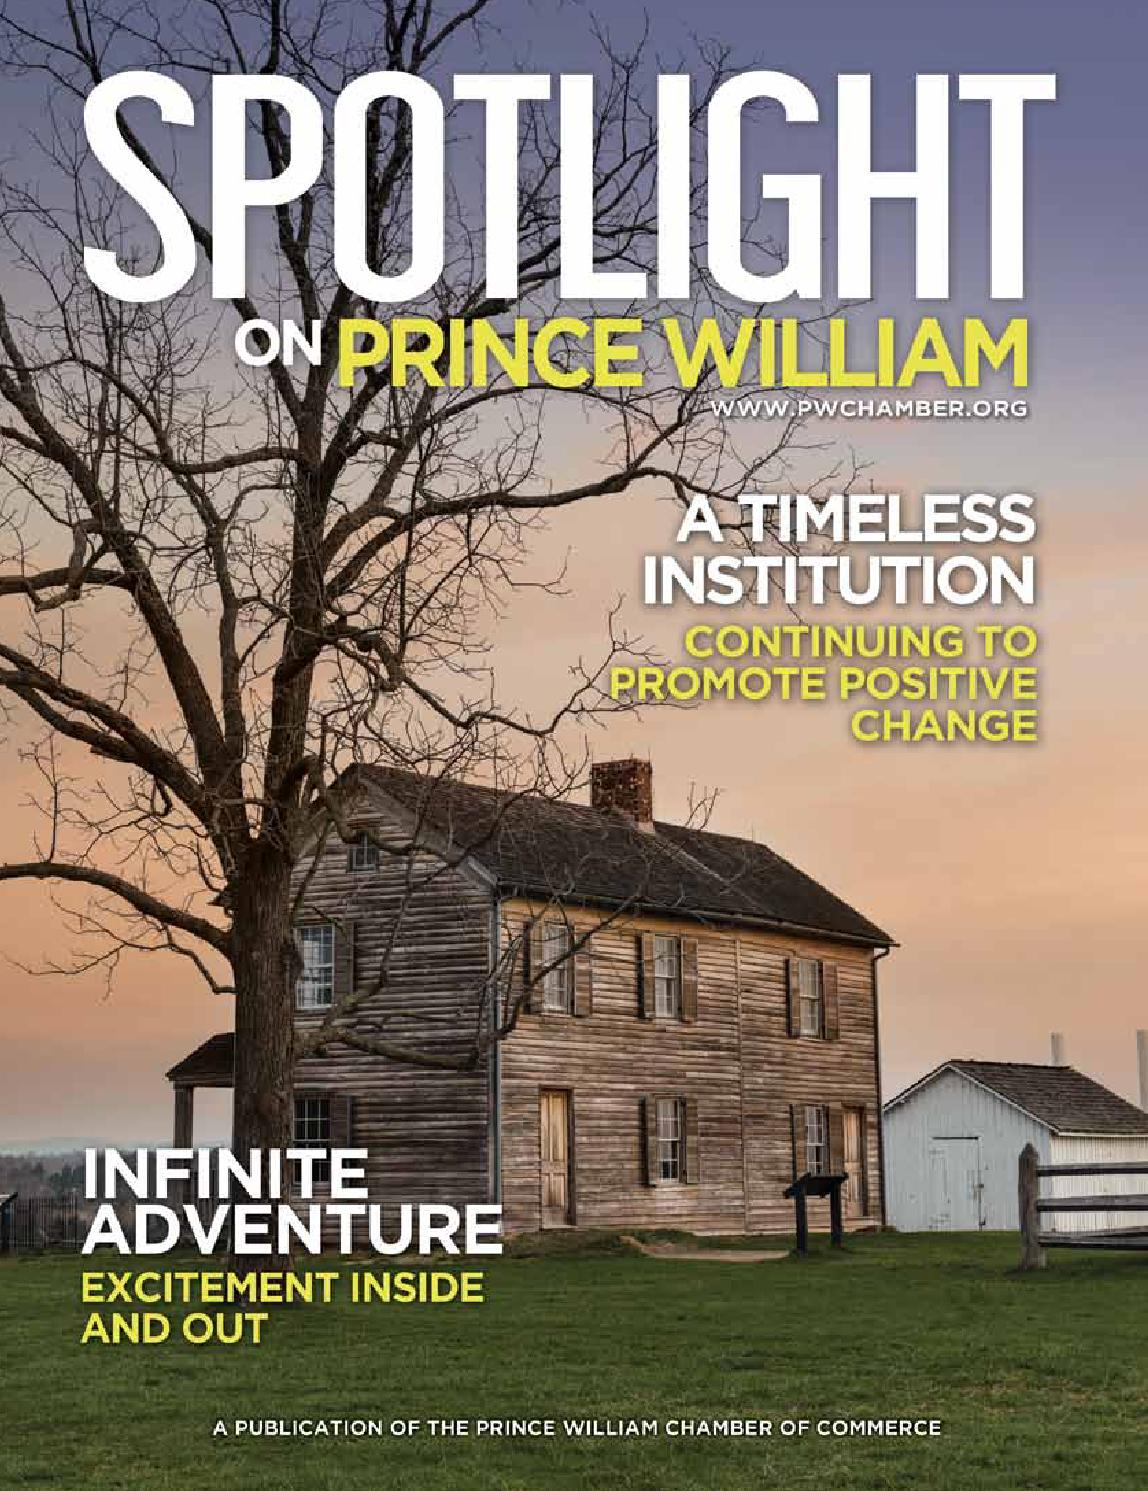 arlington tx membership directory and community profile by spotlightonprincewilliam2014